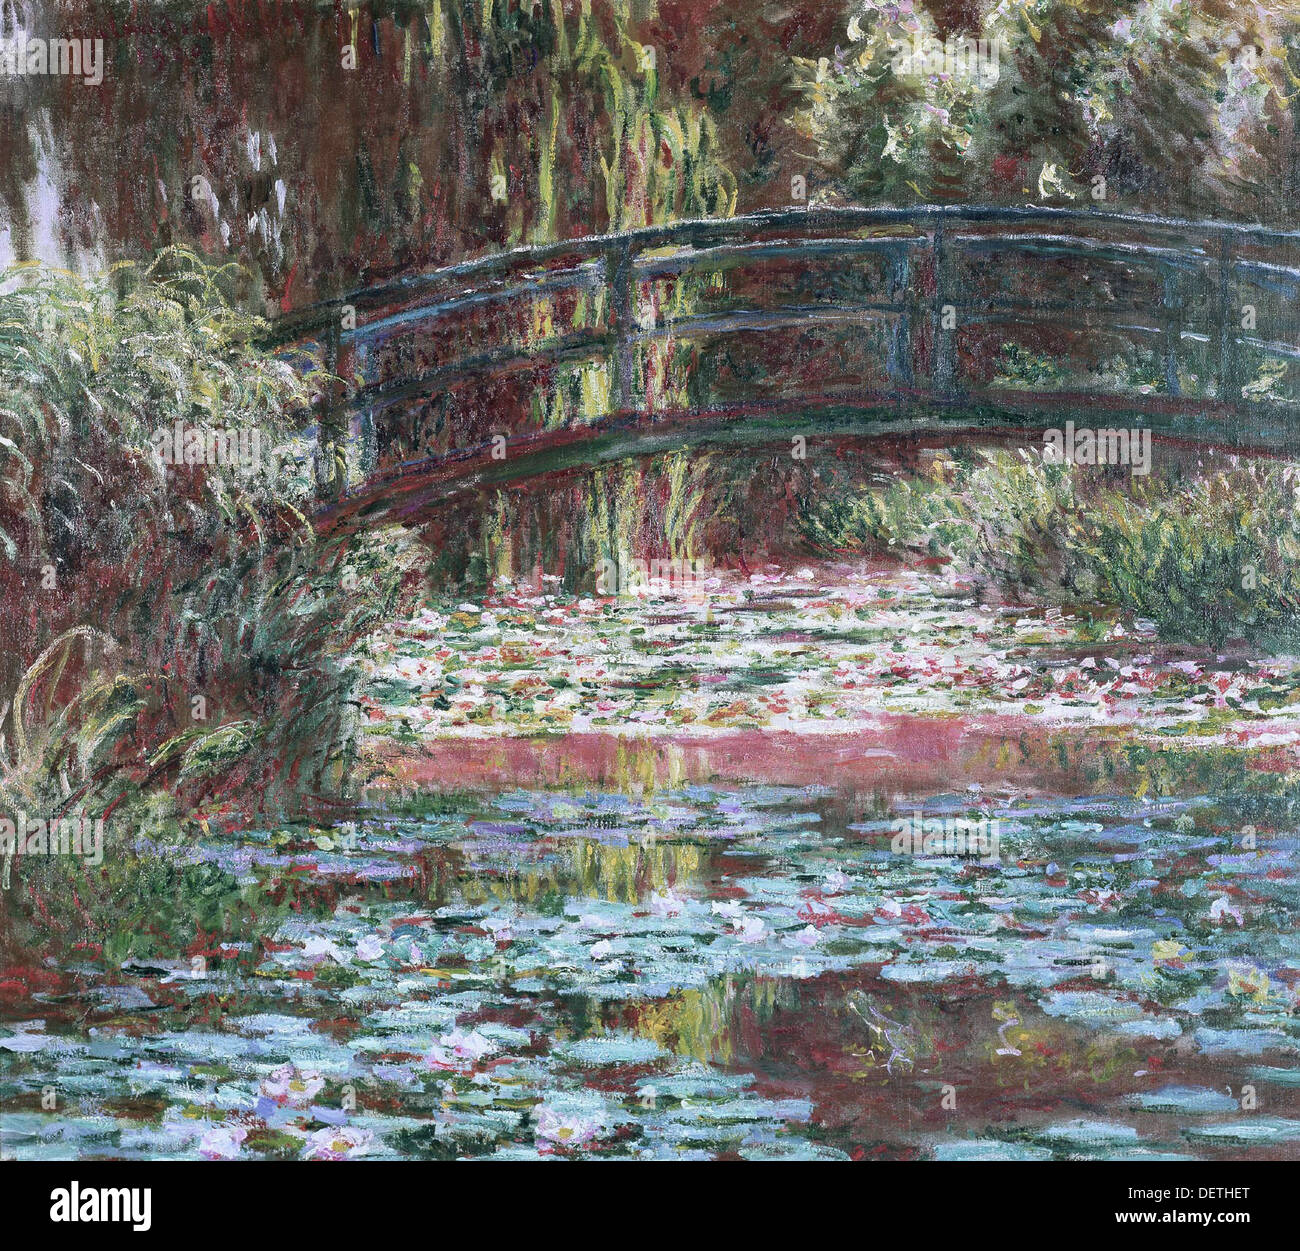 Claude Monet - Waterlily pond at Giverny - 1900 - The Art Institute of Chicago - Stock Image